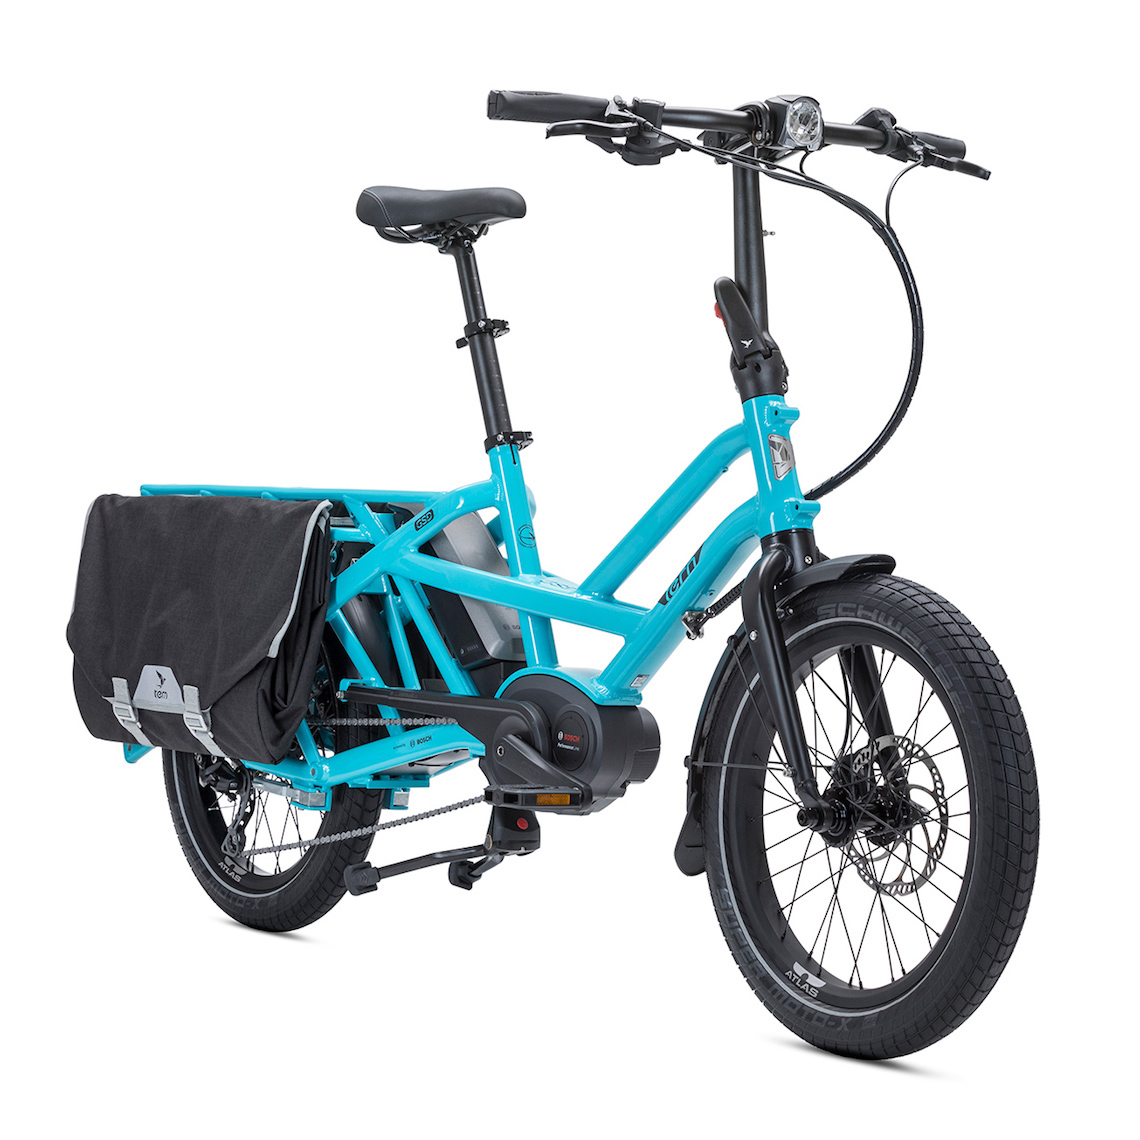 Tern GSD bicycle_urbancycling_2